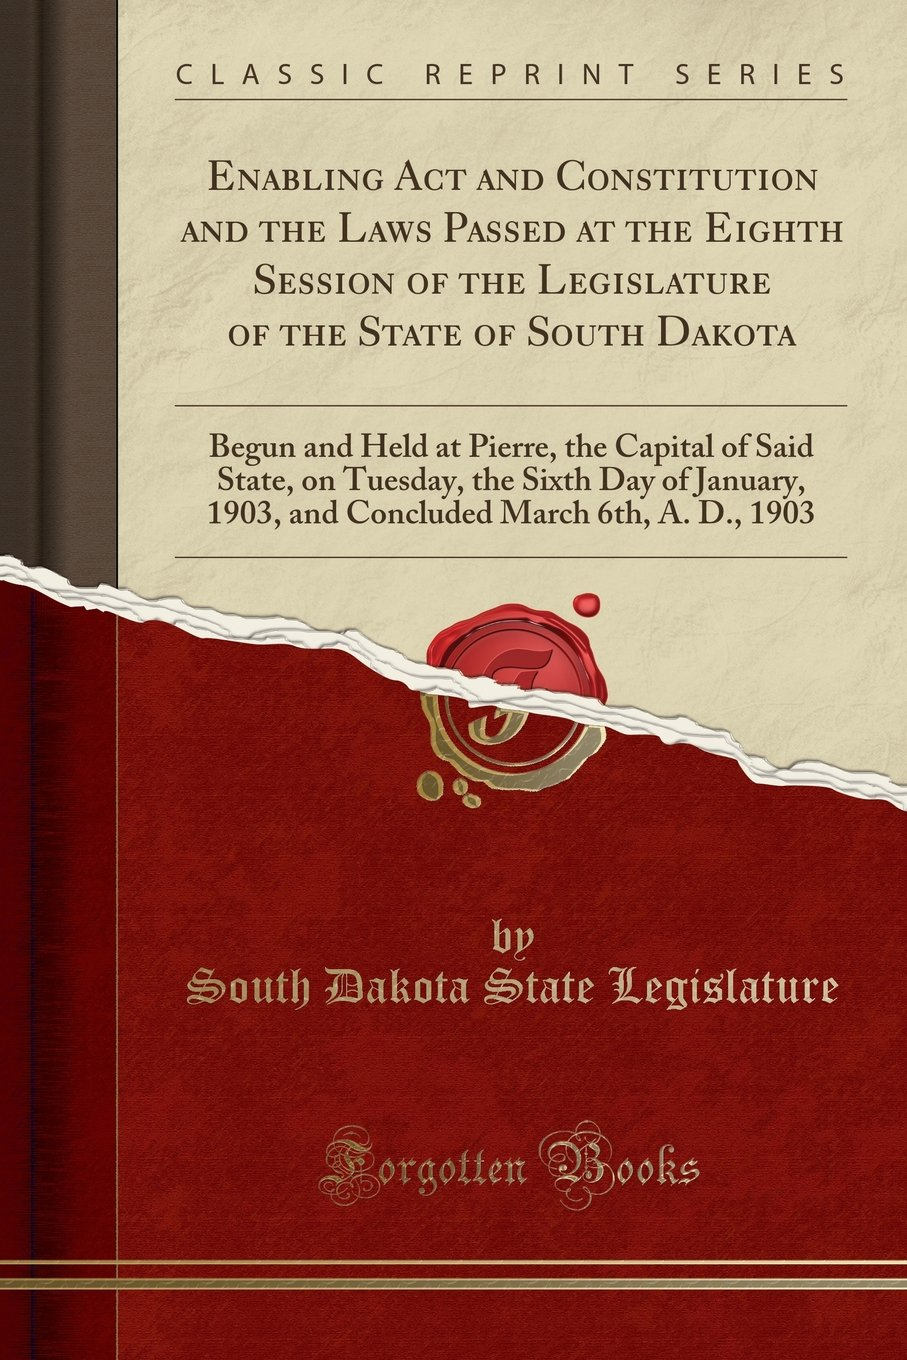 Read Online Enabling Act and Constitution and the Laws Passed at the Eighth Session of the Legislature of the State of South Dakota: Begun and Held at Pierre, the ... 1903, and Concluded March 6th, A. D., 1903 pdf epub